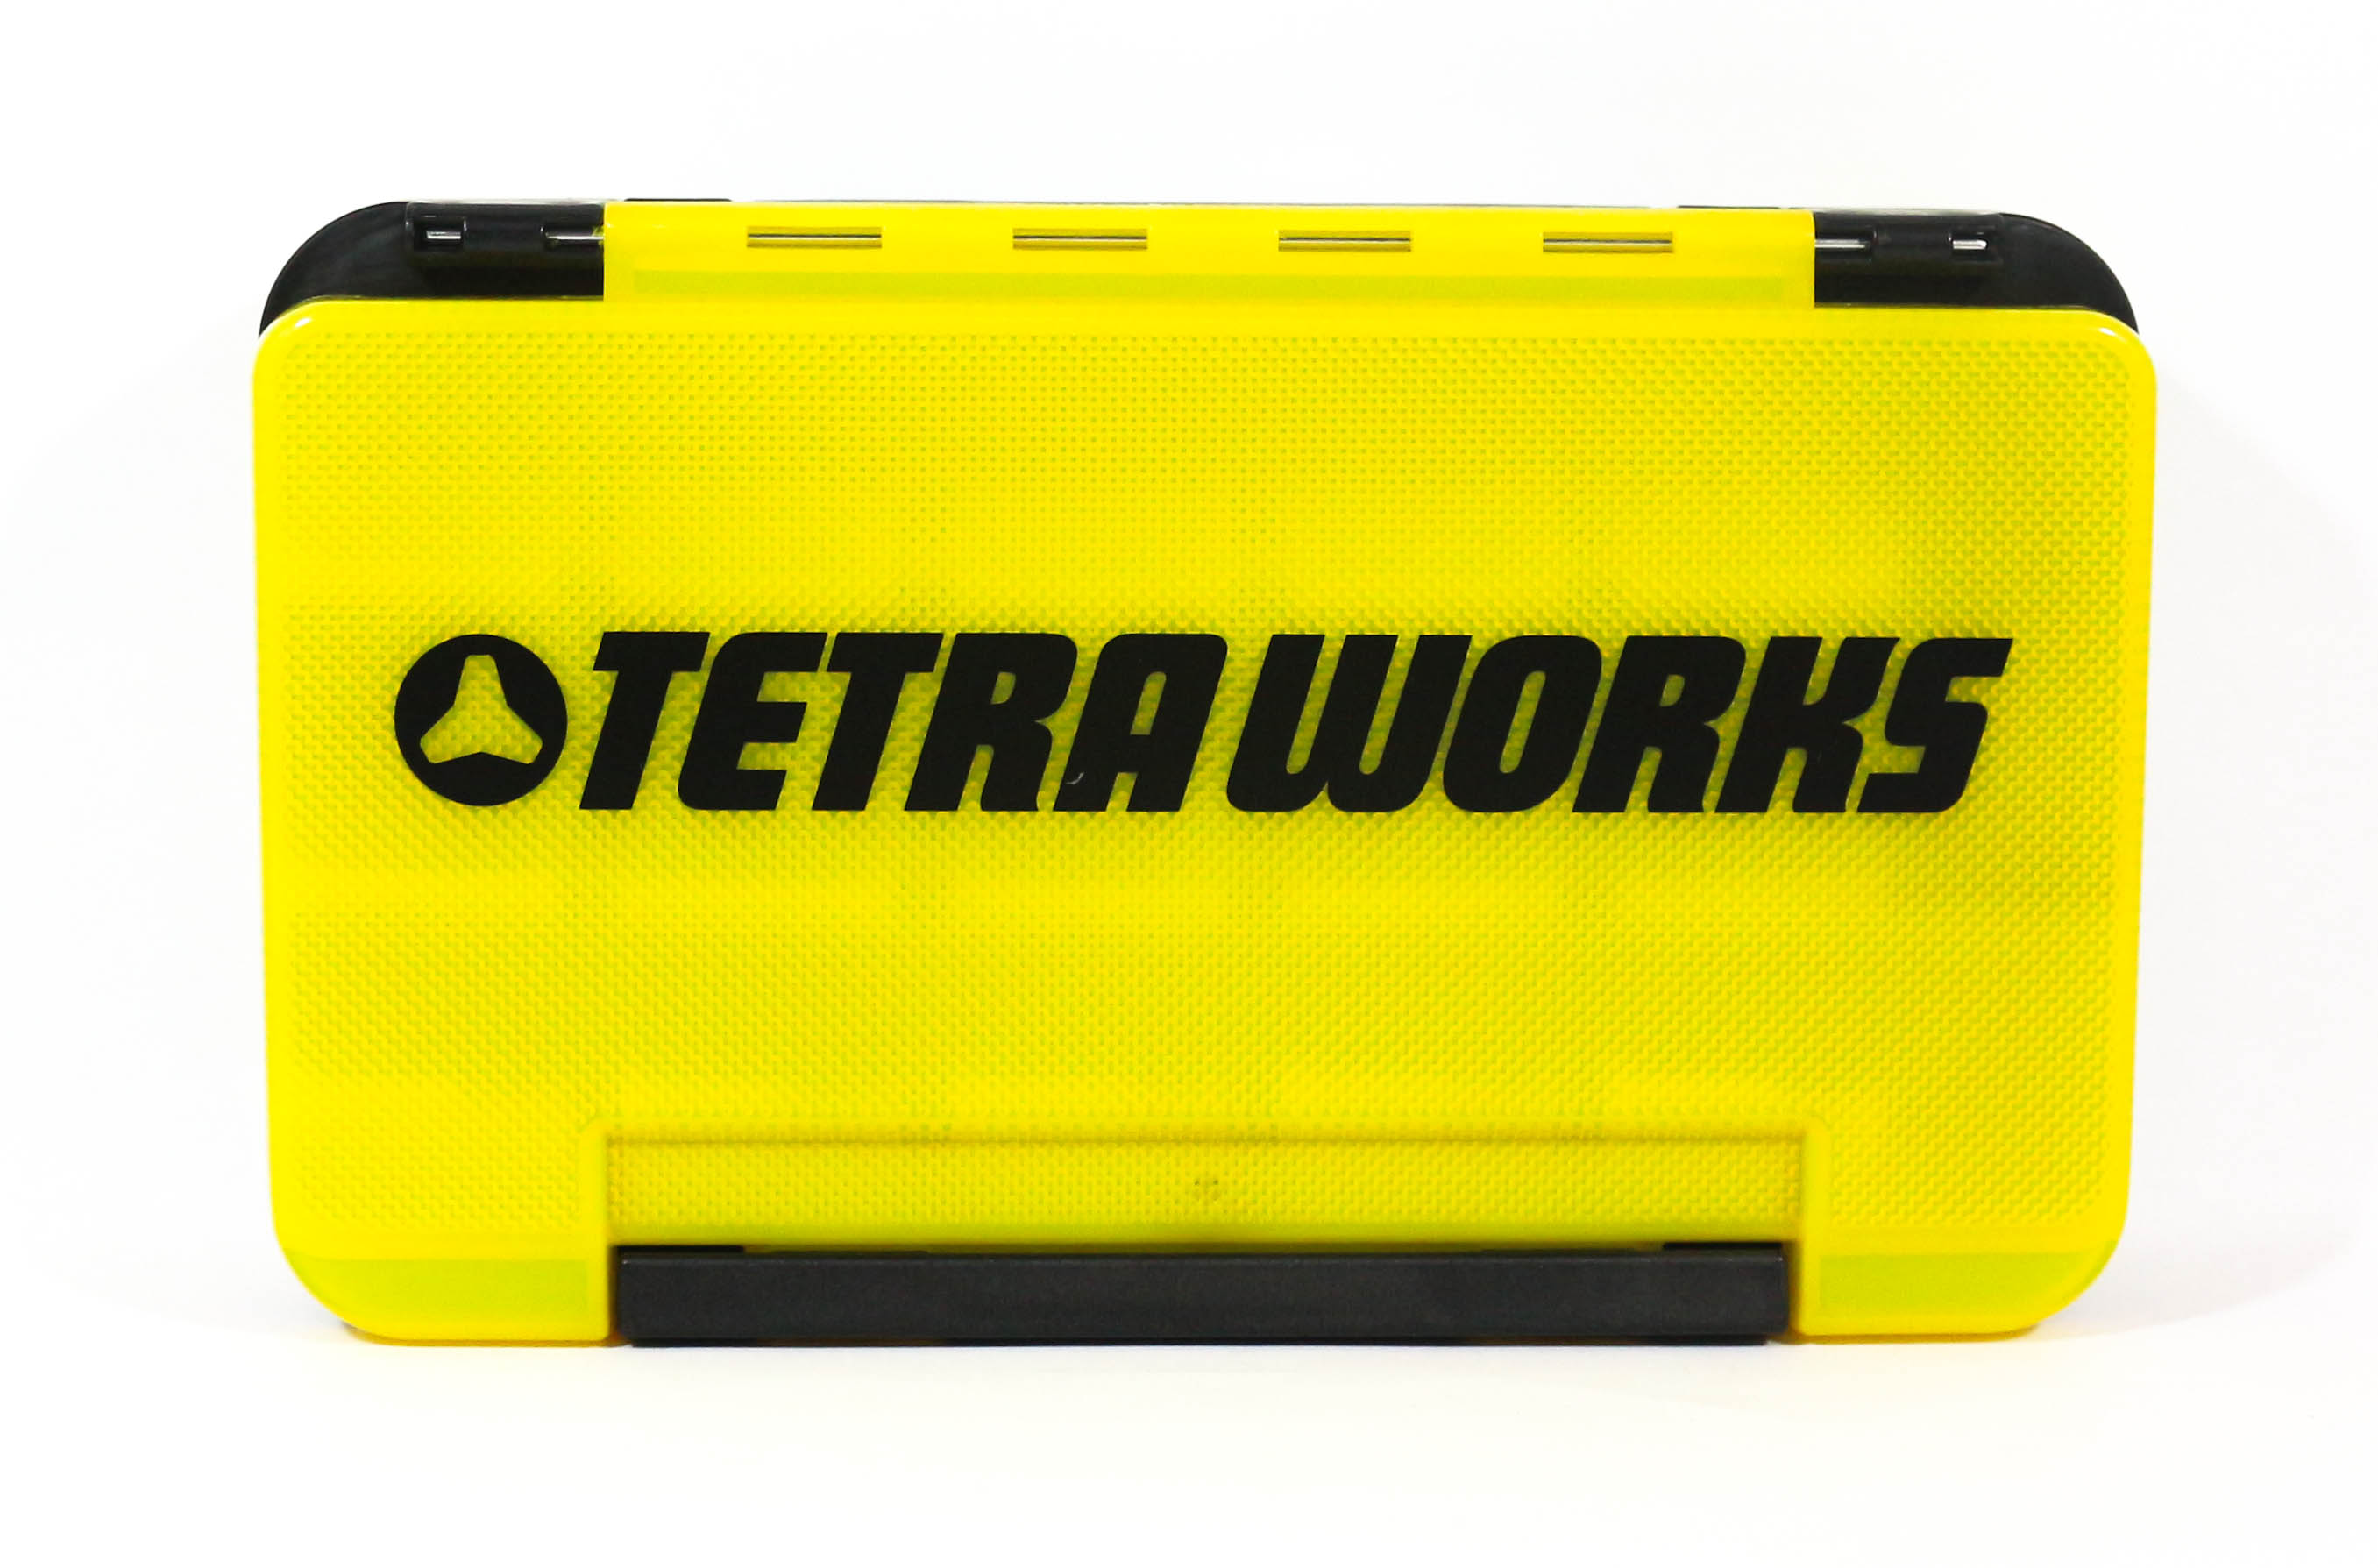 Duo Tetra Works Meiho Run Gun Case 1010W 175 x 105 x 38 mm (0277)